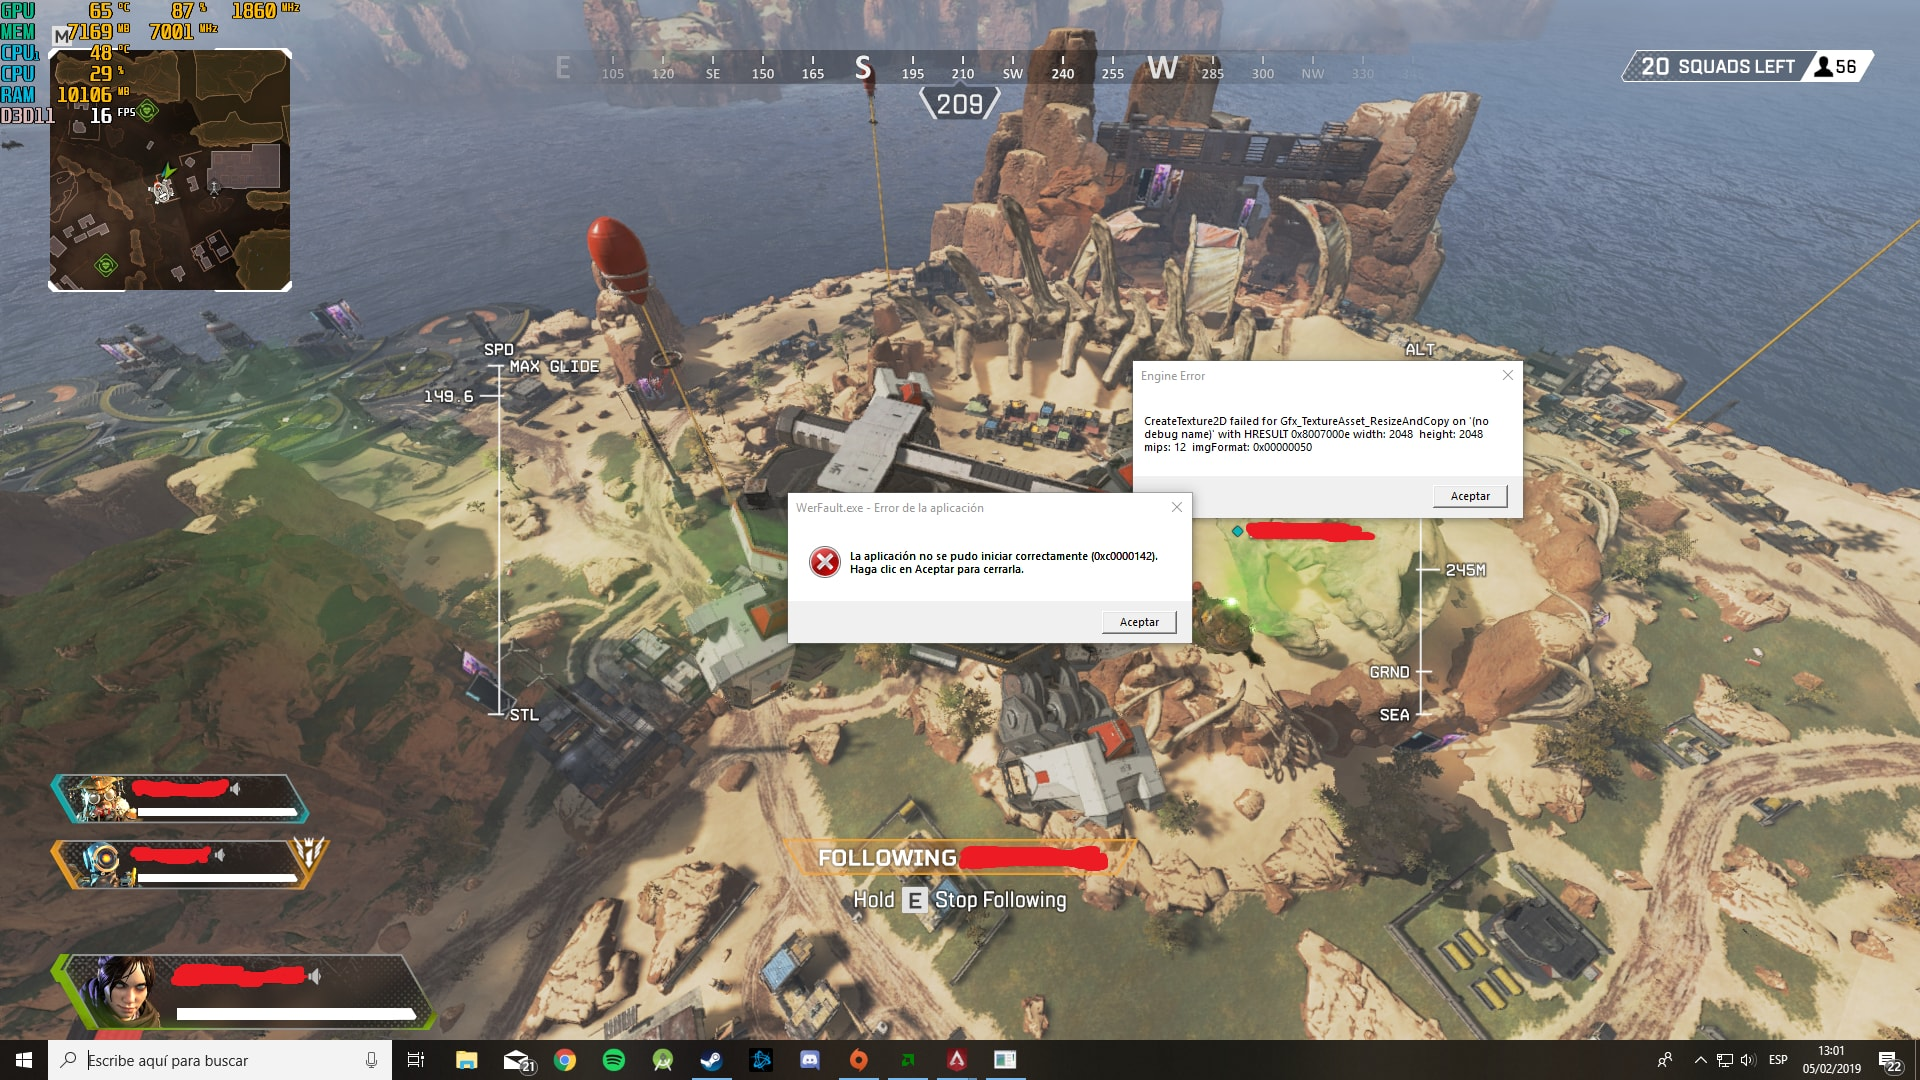 Apex Legends crashes in game - Answer HQ